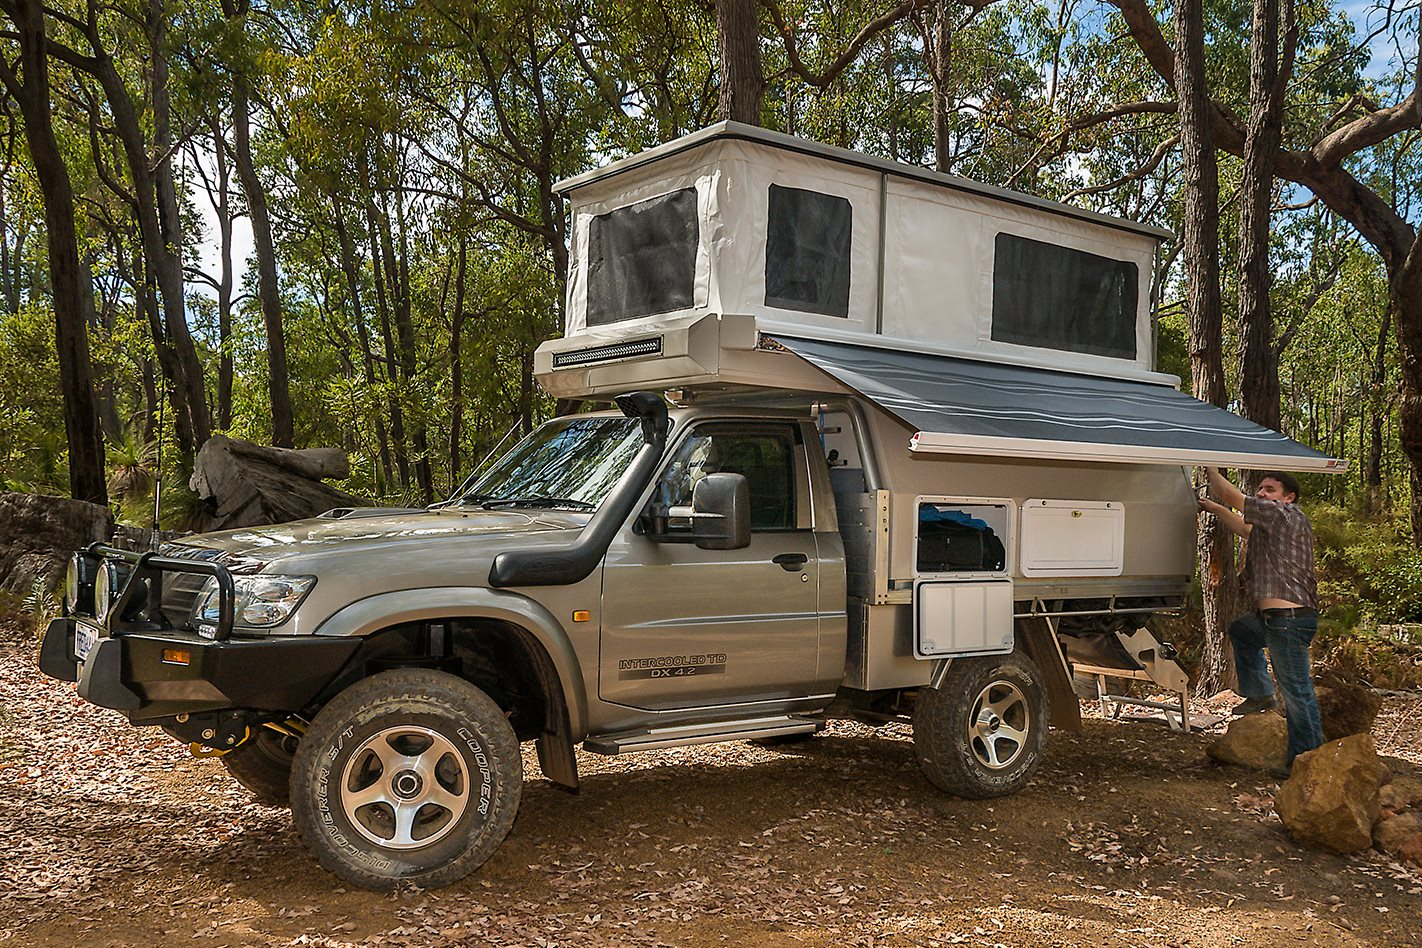 globatrol custom nissan patrol camper 4x4 australia. Black Bedroom Furniture Sets. Home Design Ideas